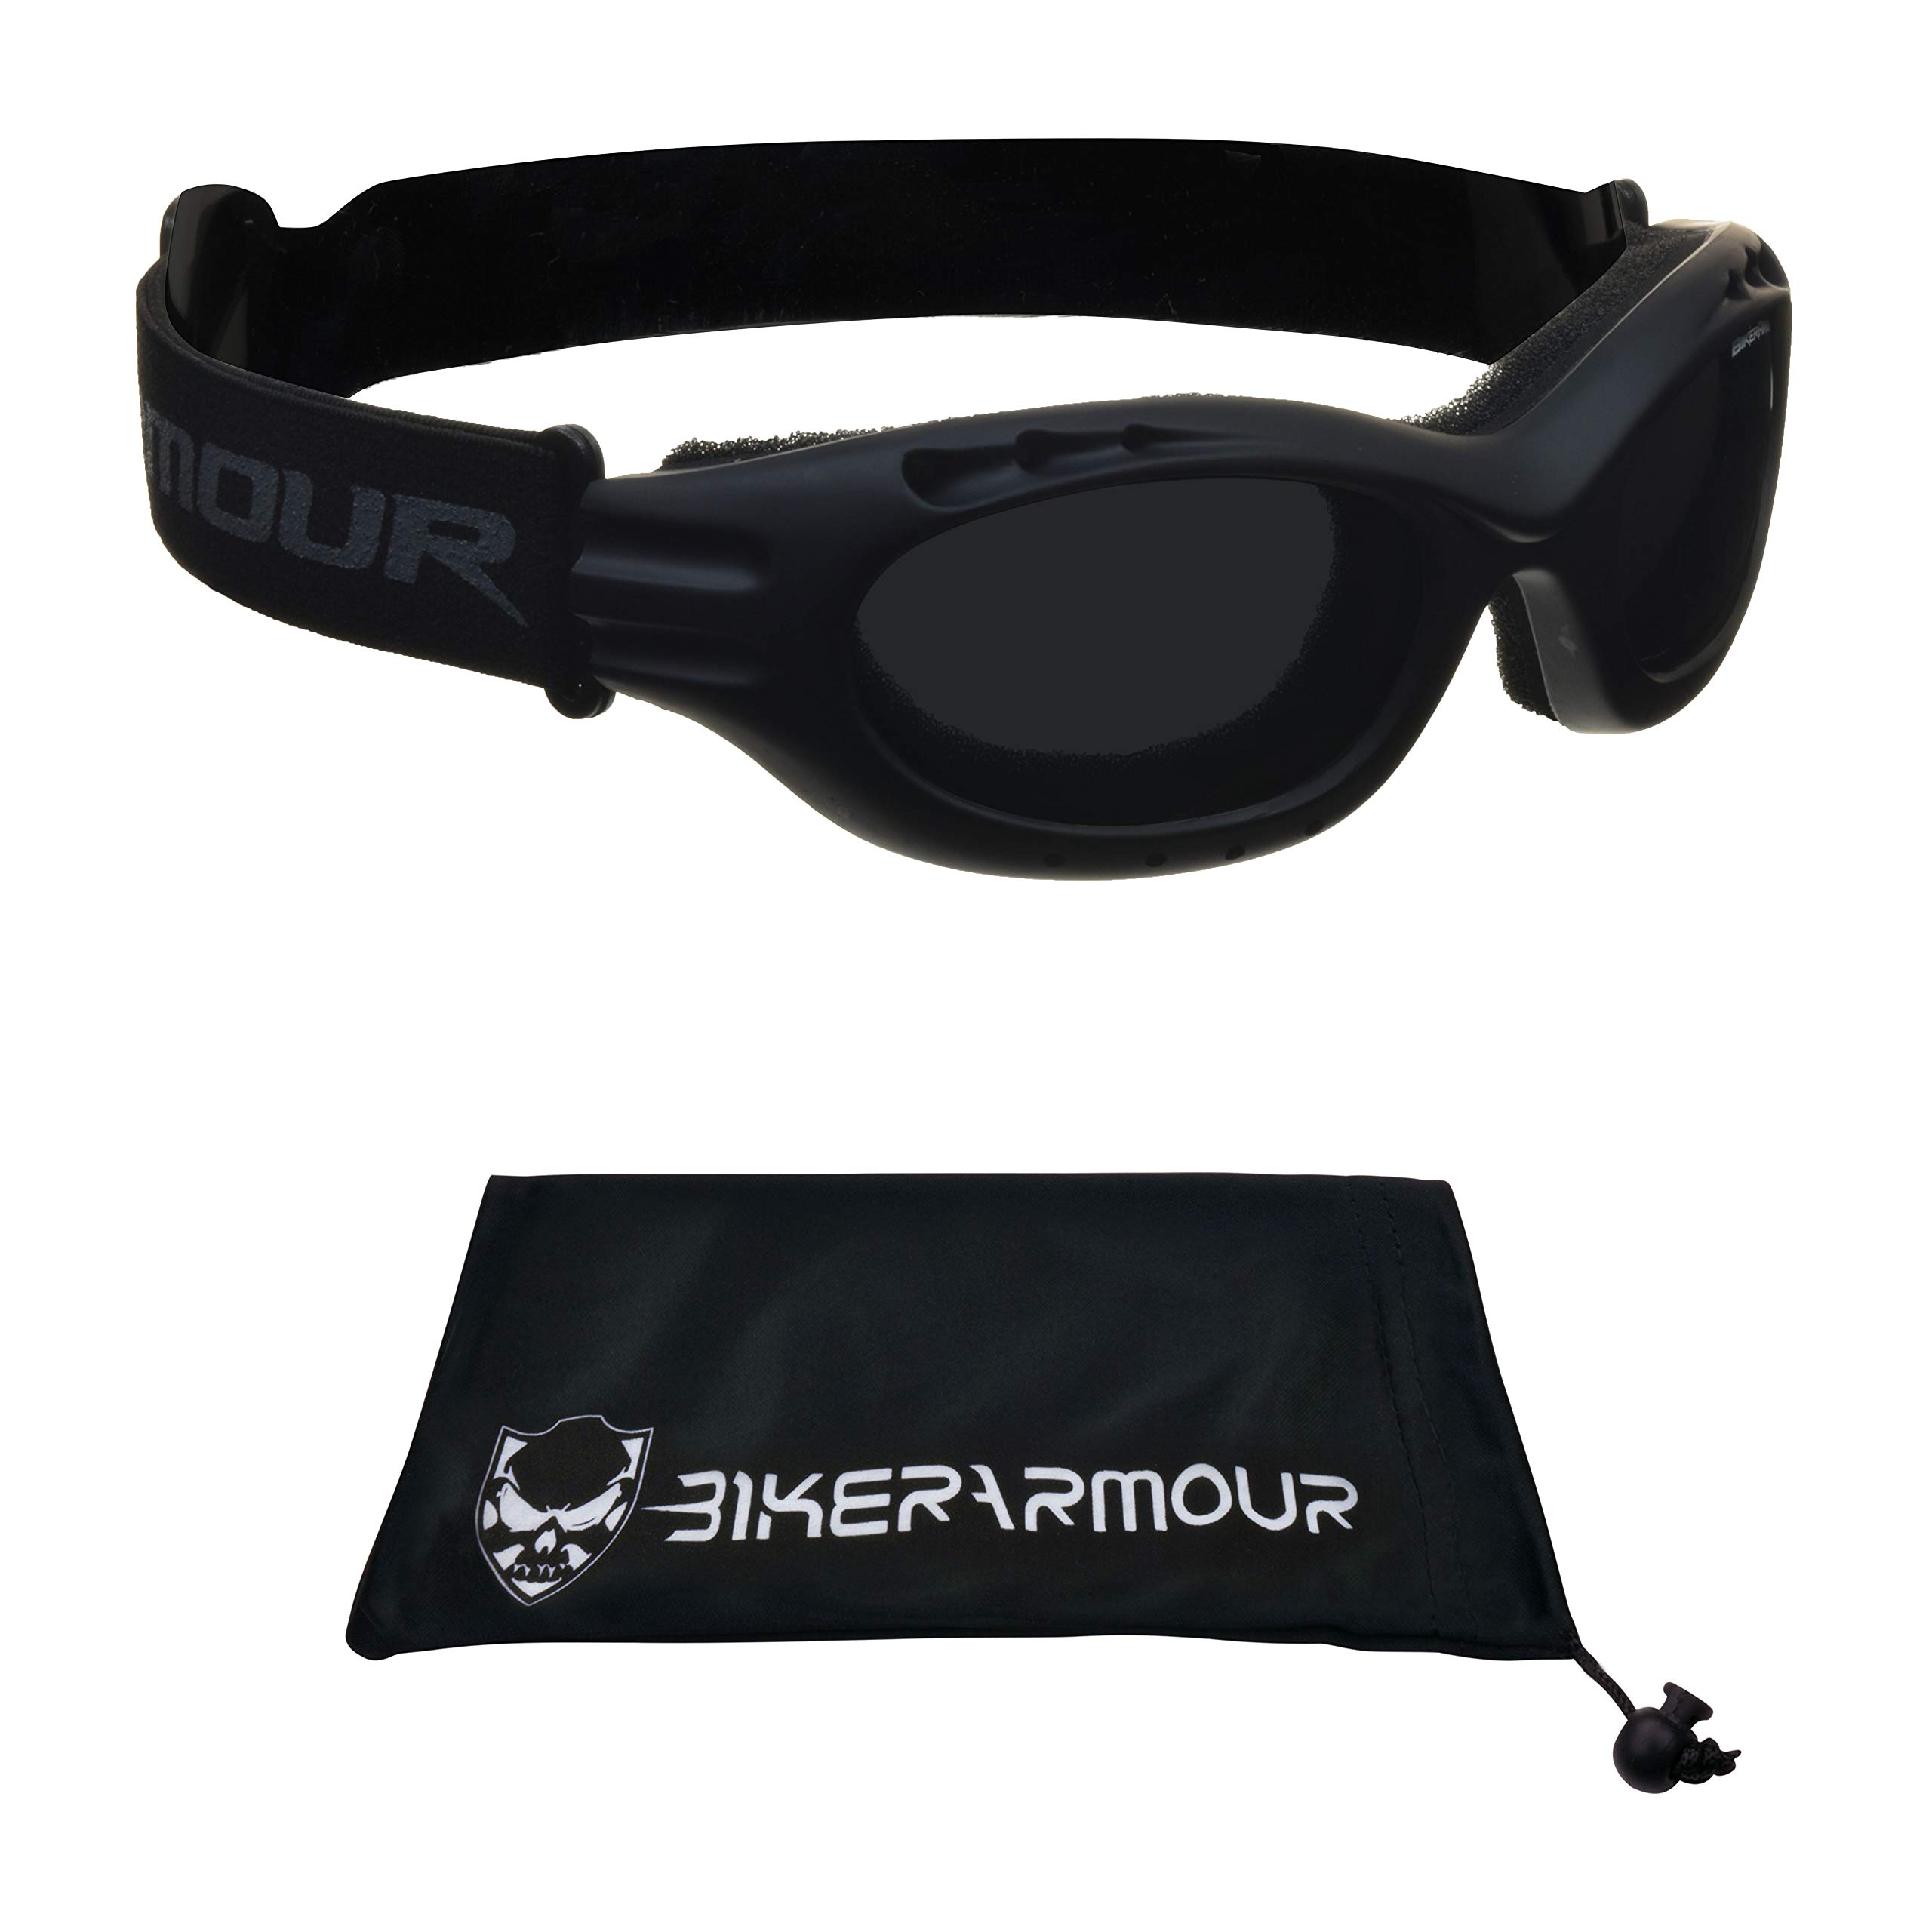 Motorcycle Polarized Goggles for Men and Women. Anti Glare Clear Vision (Black Polarized Smoke)